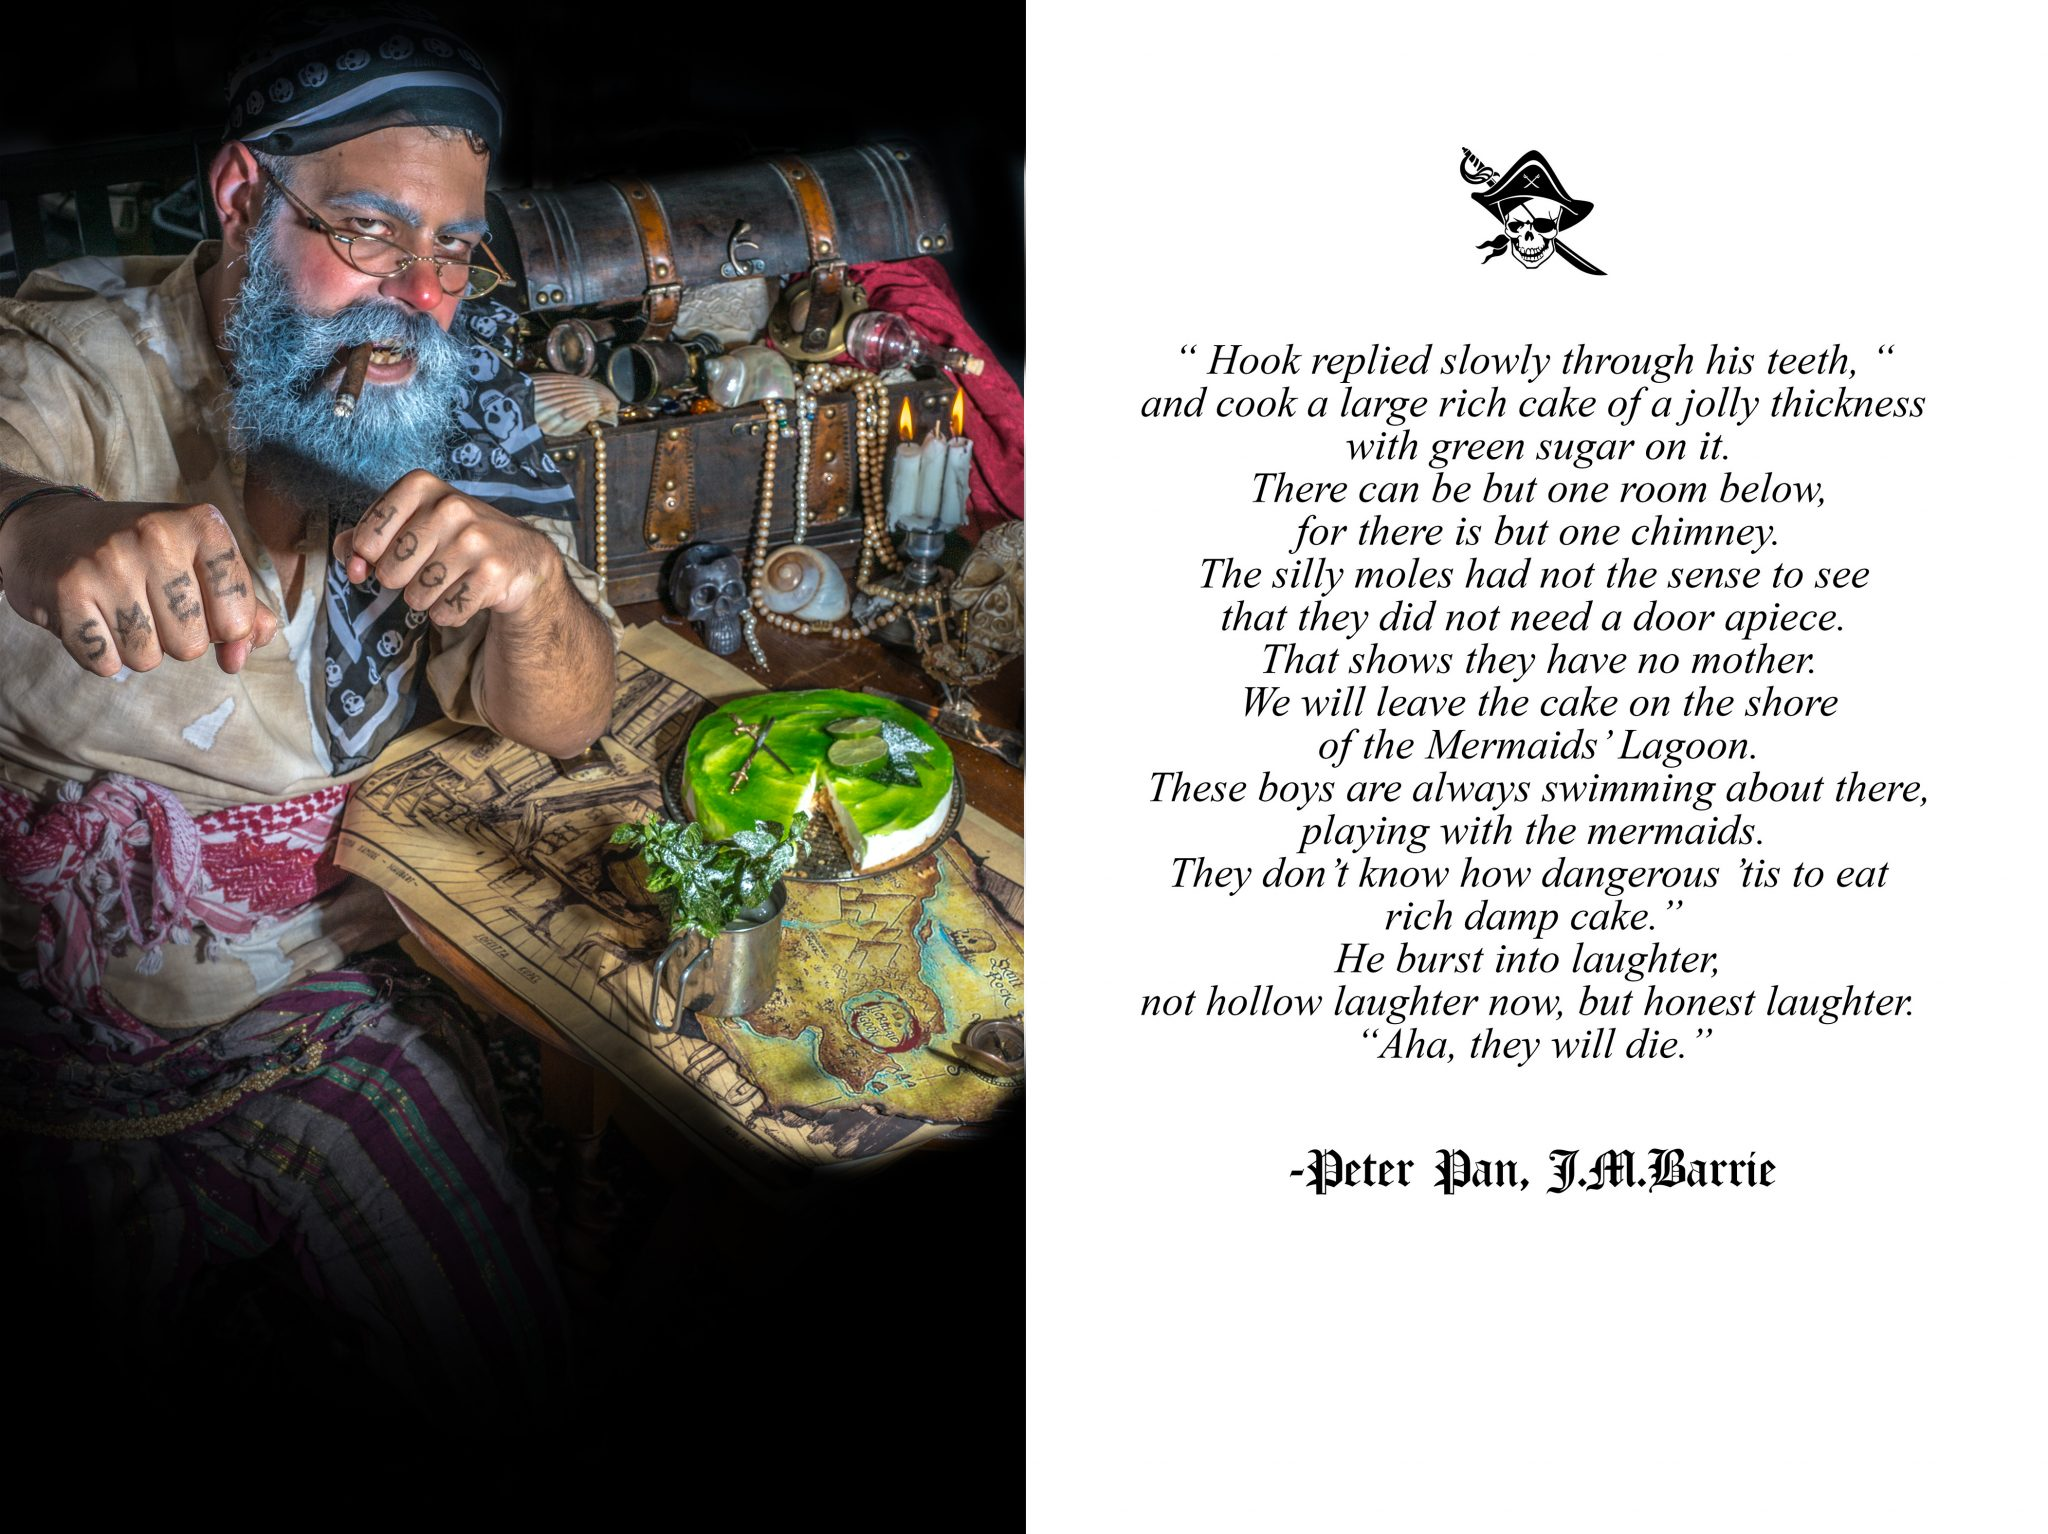 smee and the cake for the lost boys